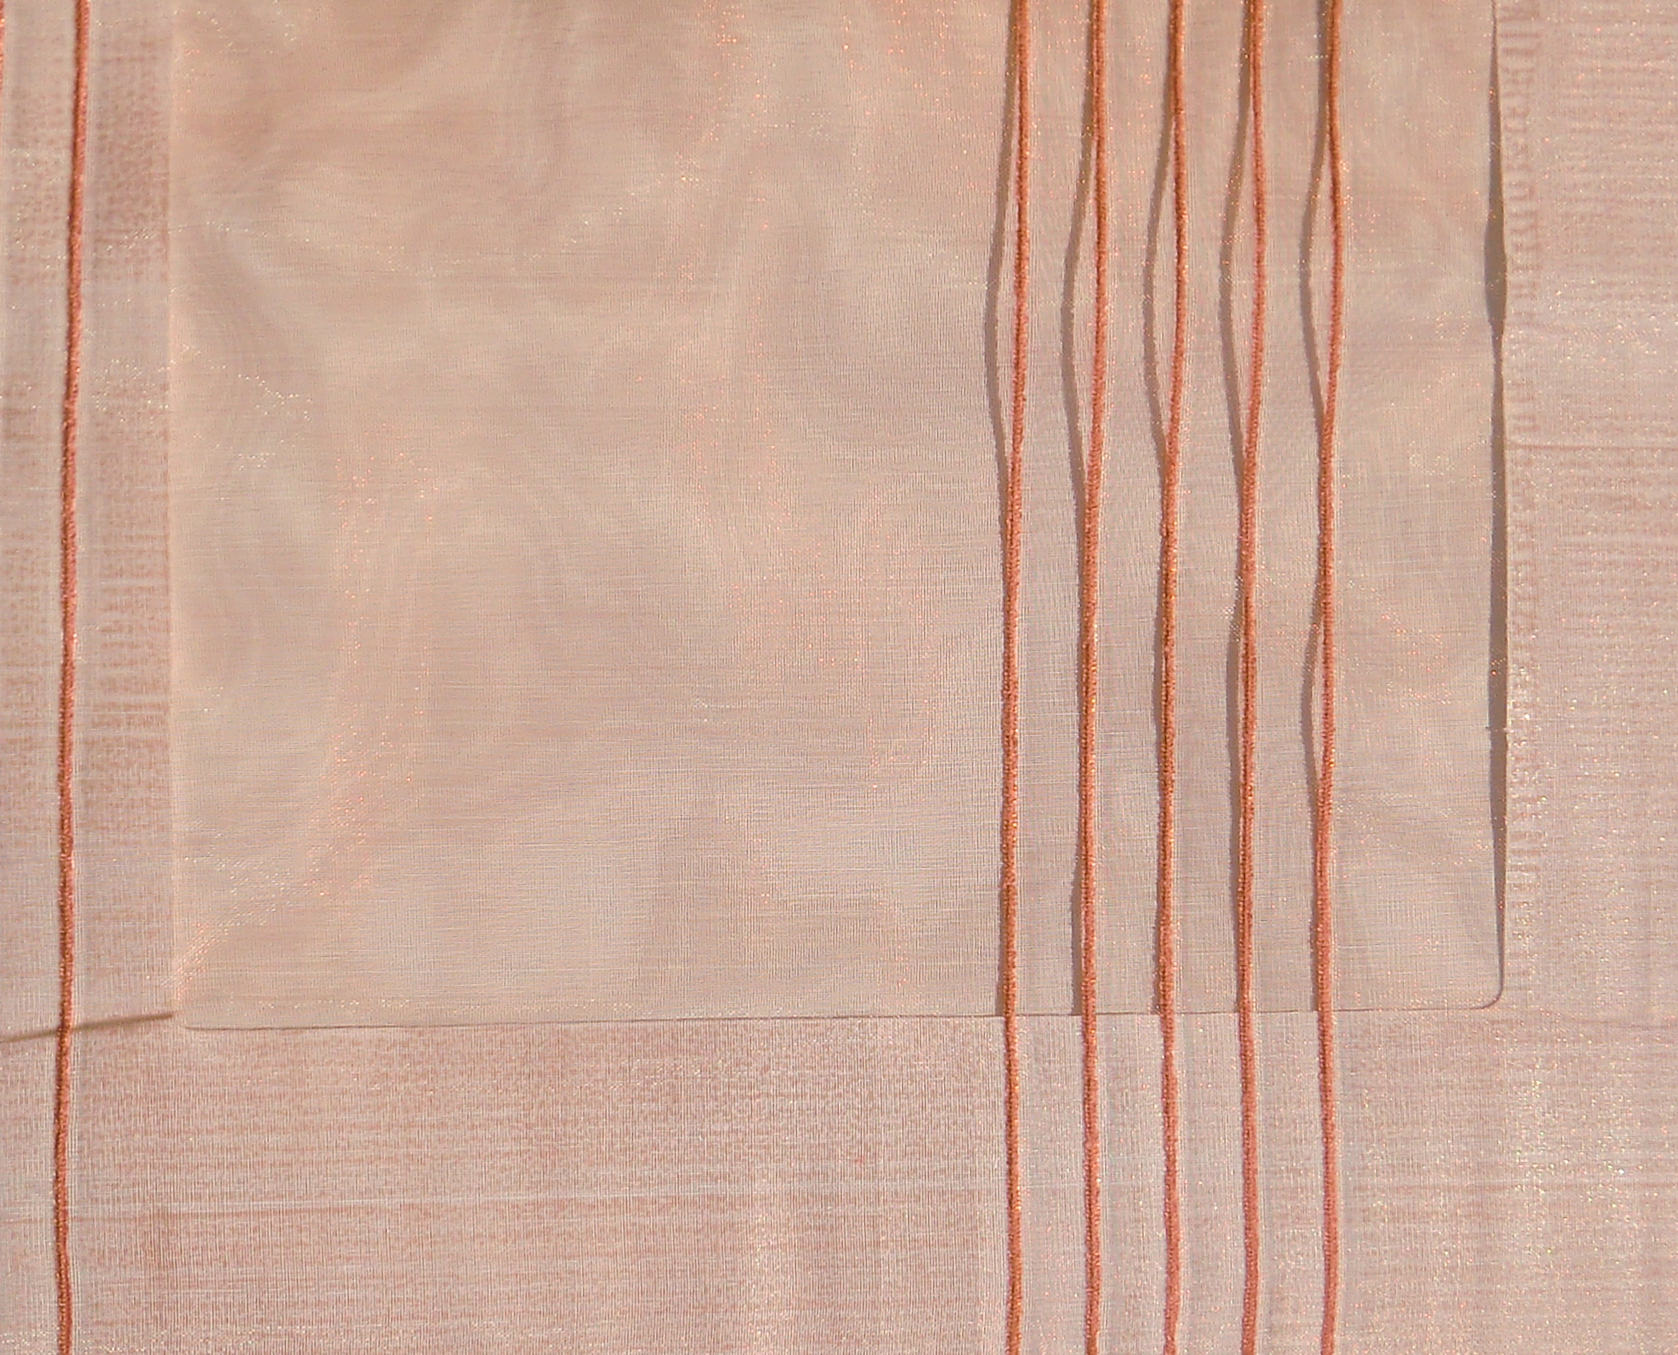 Indiana Copper Sheer 34514 by